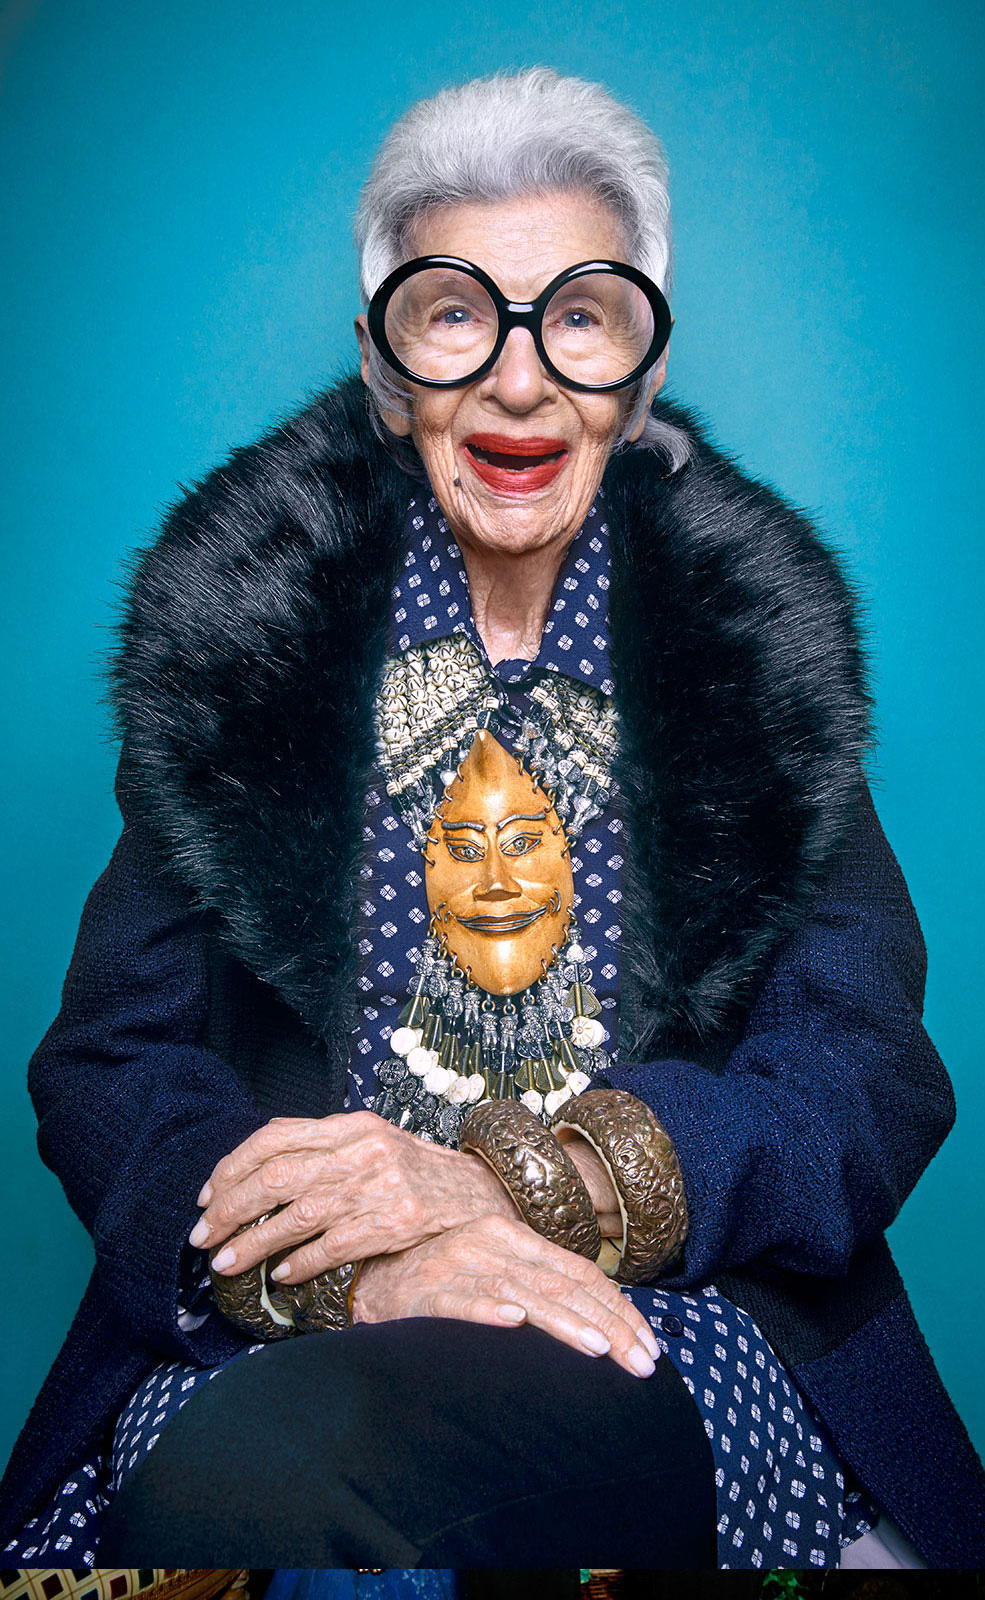 94 Year Old Iris Apfel Is Cooler Than You Ll Ever Be As The New Face Of Two Brands